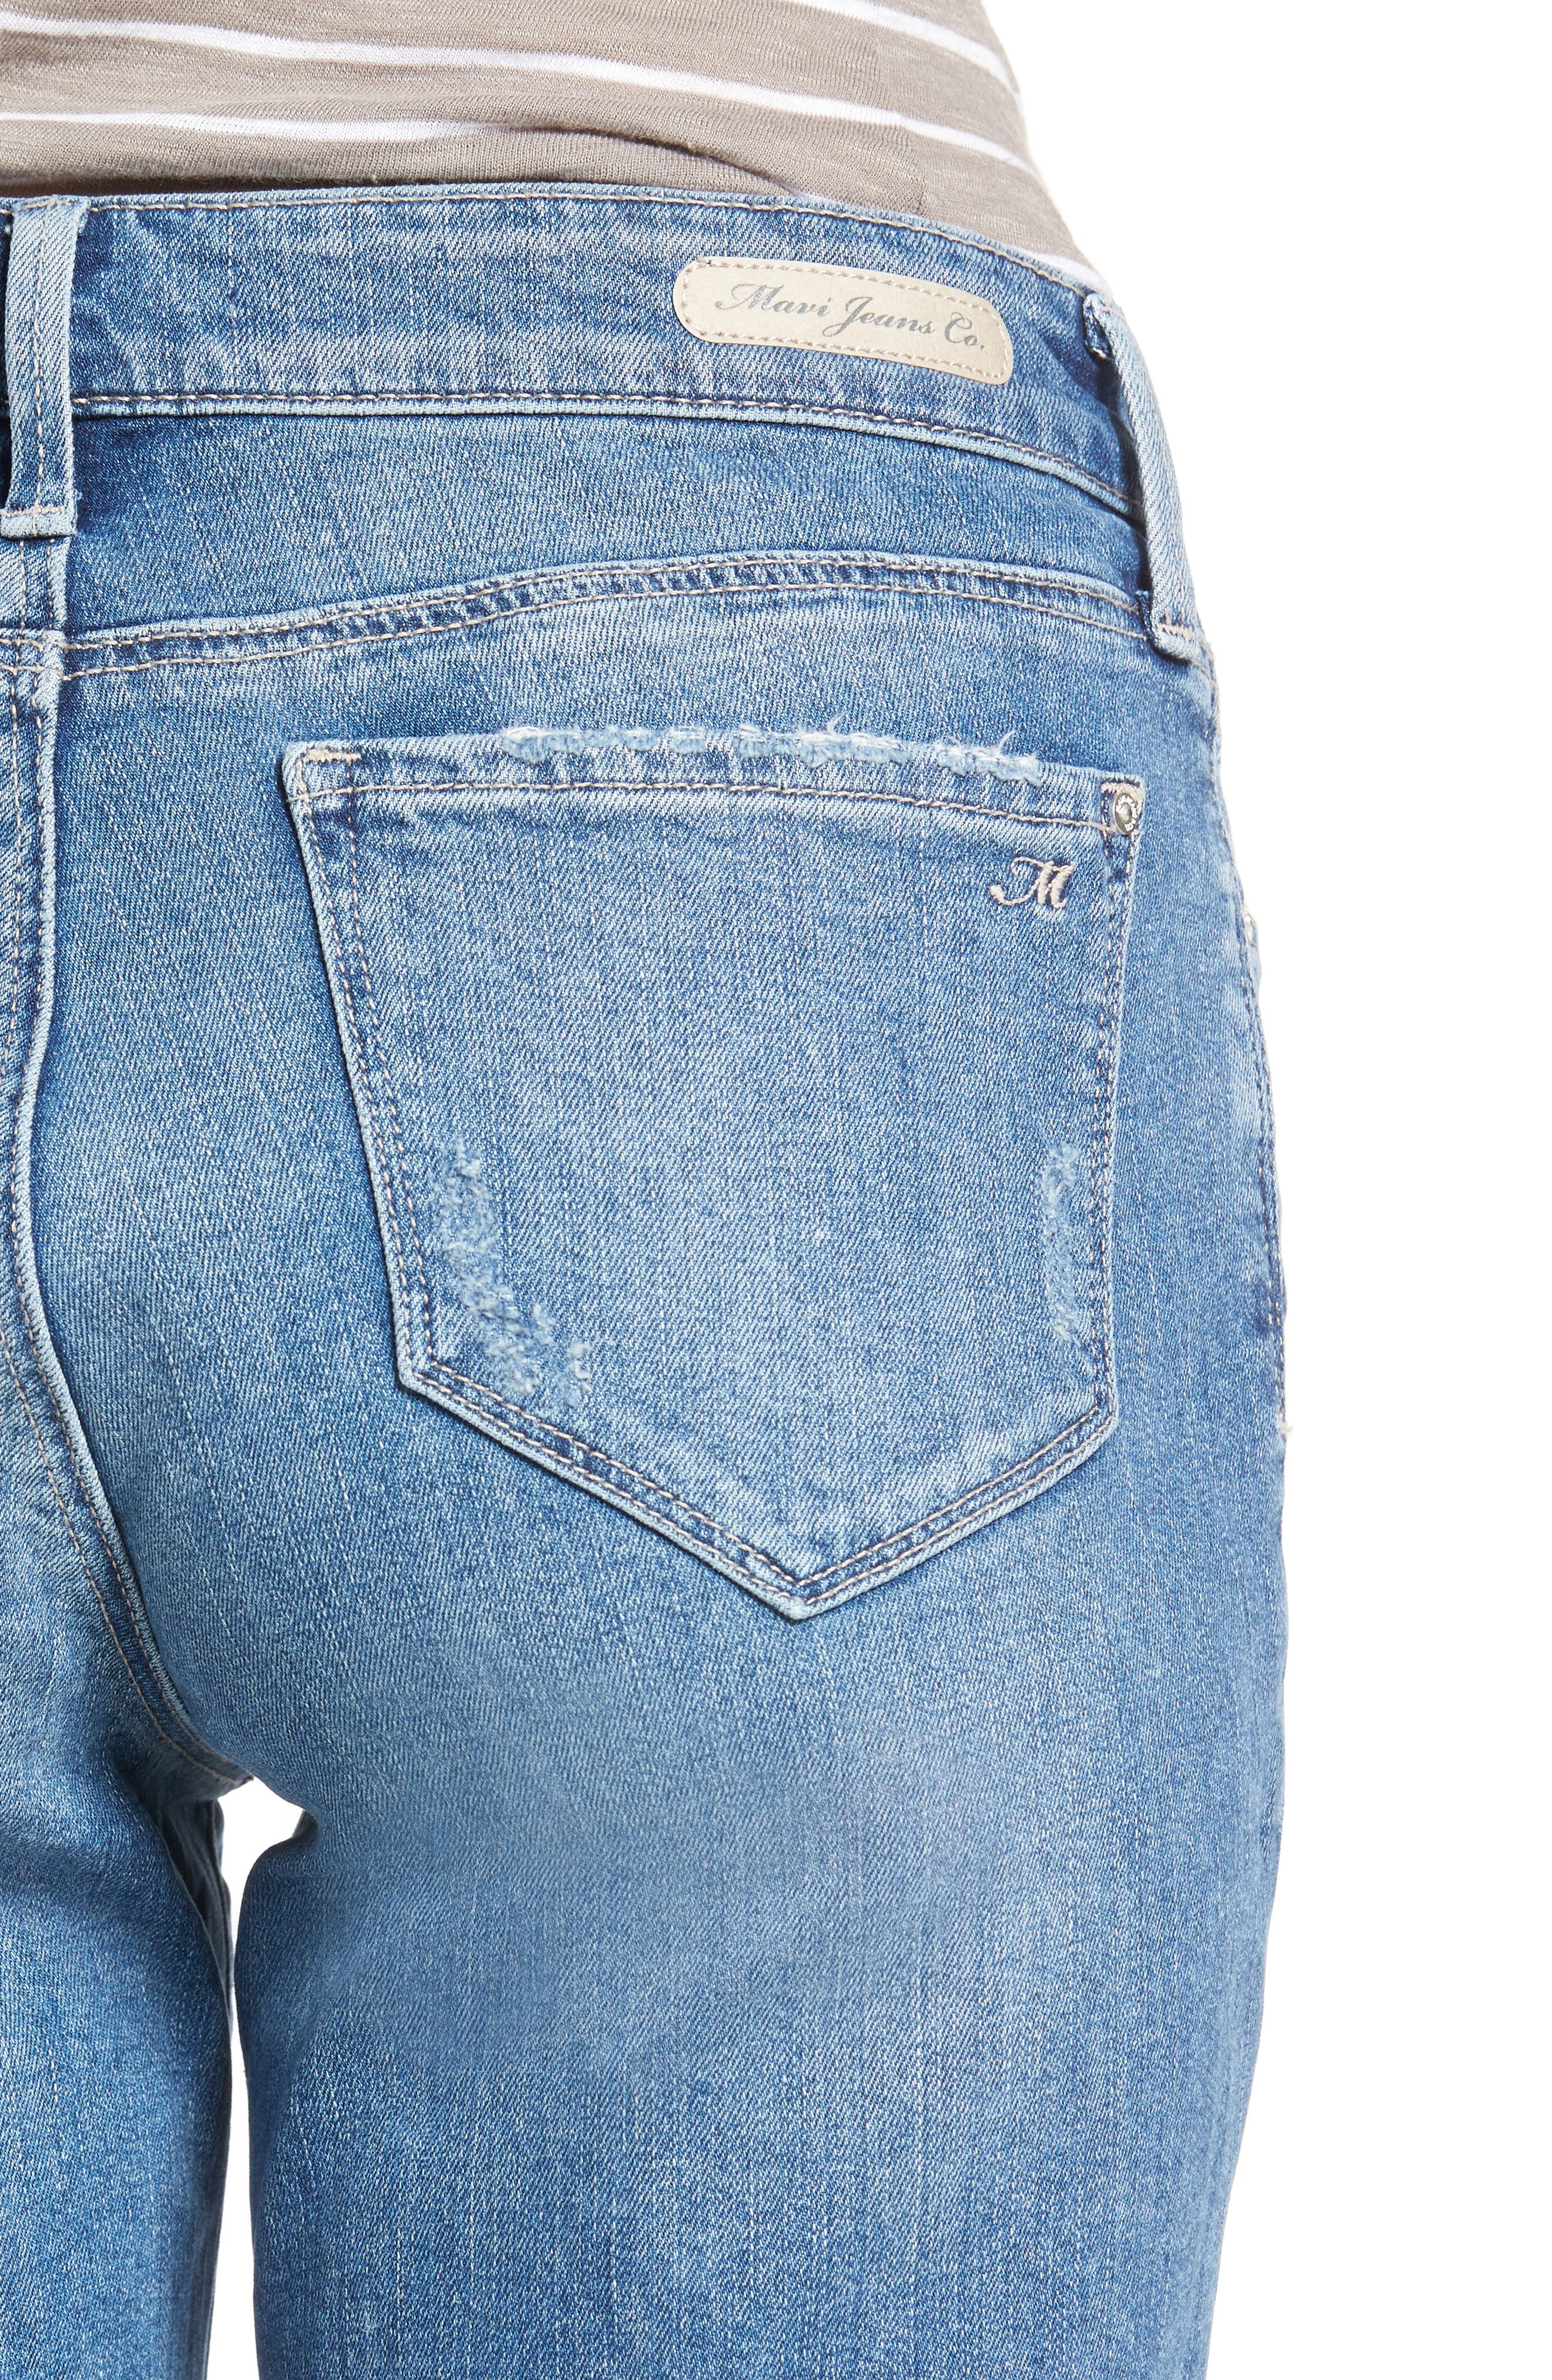 Alexis Ripped Denim Shorts,                             Alternate thumbnail 4, color,                             Mid Ripped